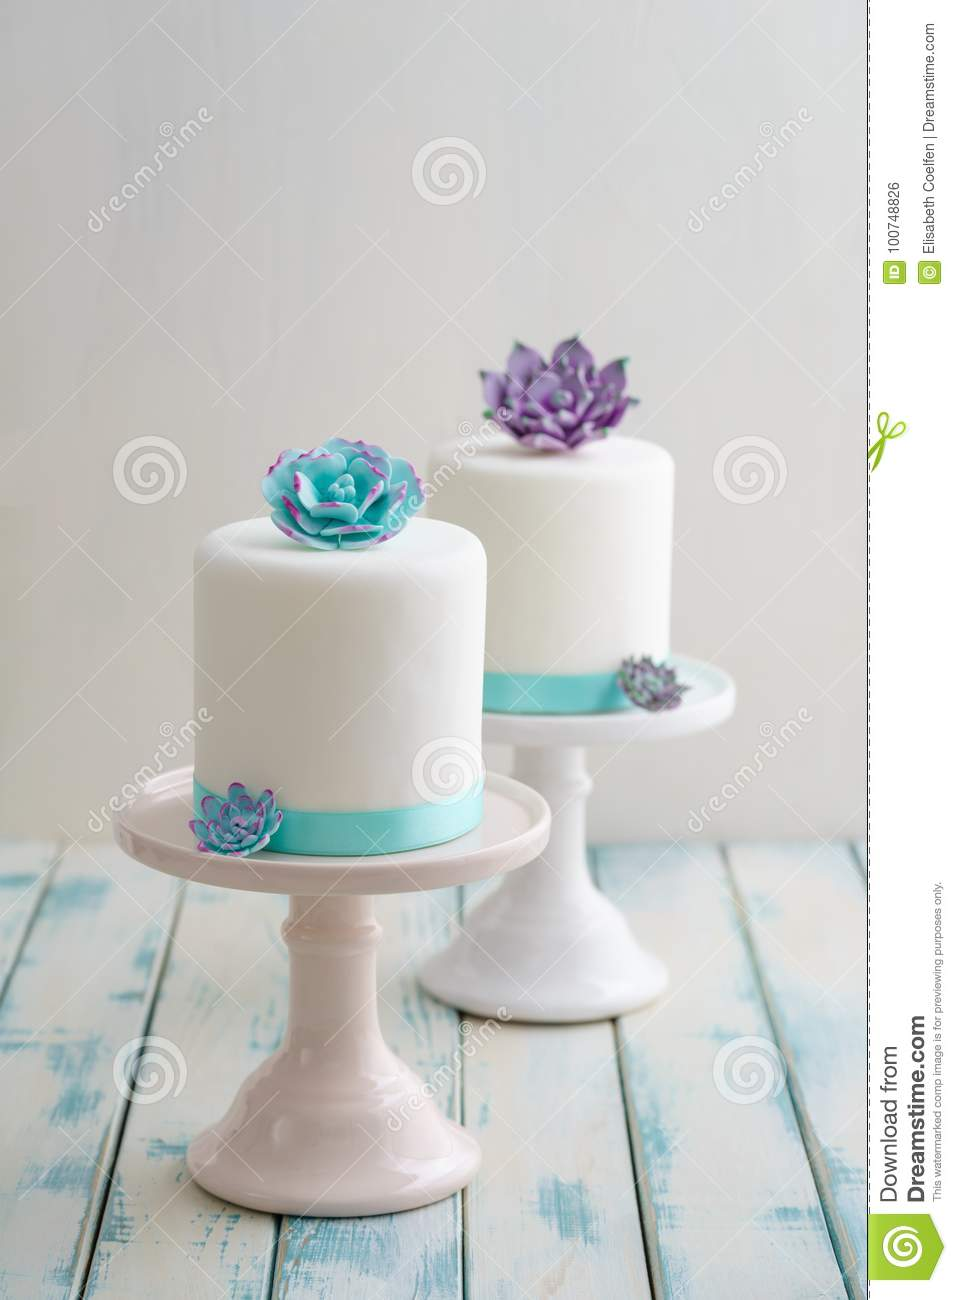 Mini Succulent Wedding Cakes Stock Photo Image Of Turquoise Birthday 100748826